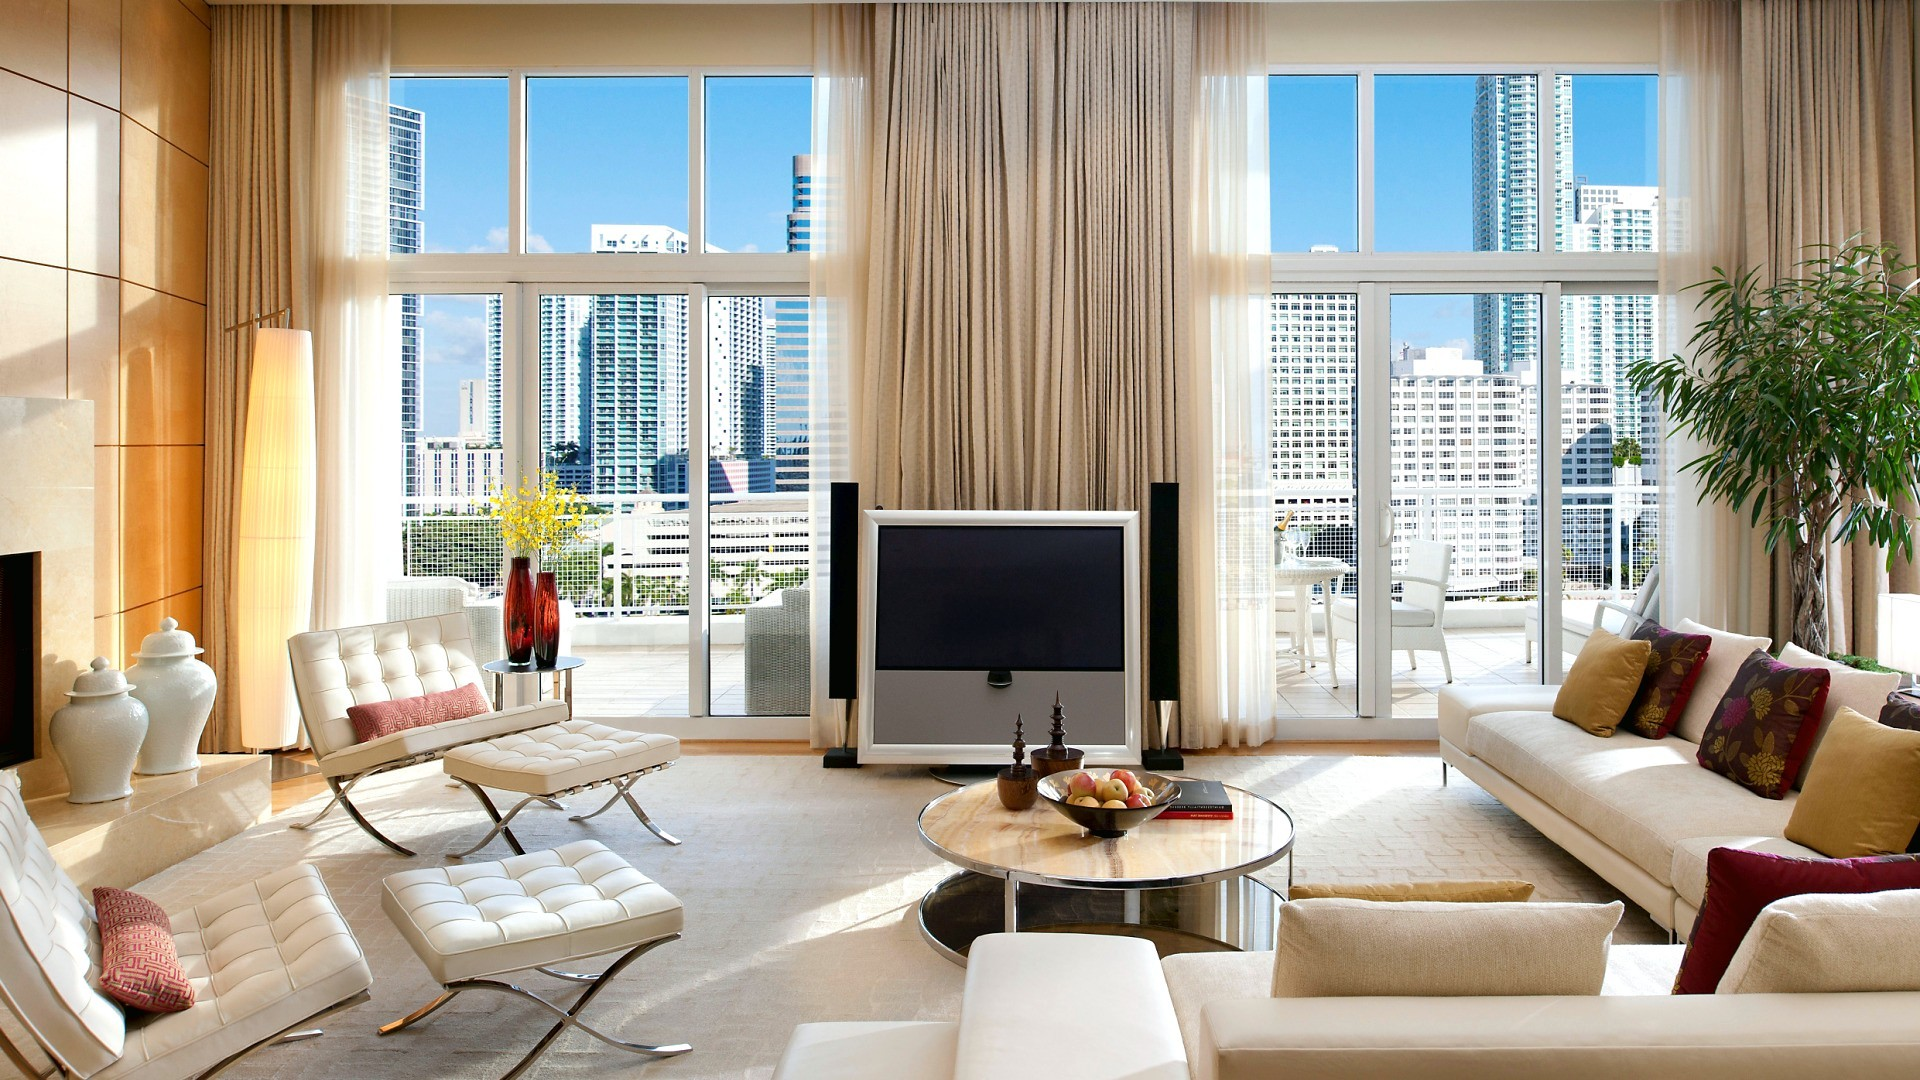 picture: sofa, city, pillows, room, design, living room, interior, windows, table, style, bright, armchairs, view, tv (image)